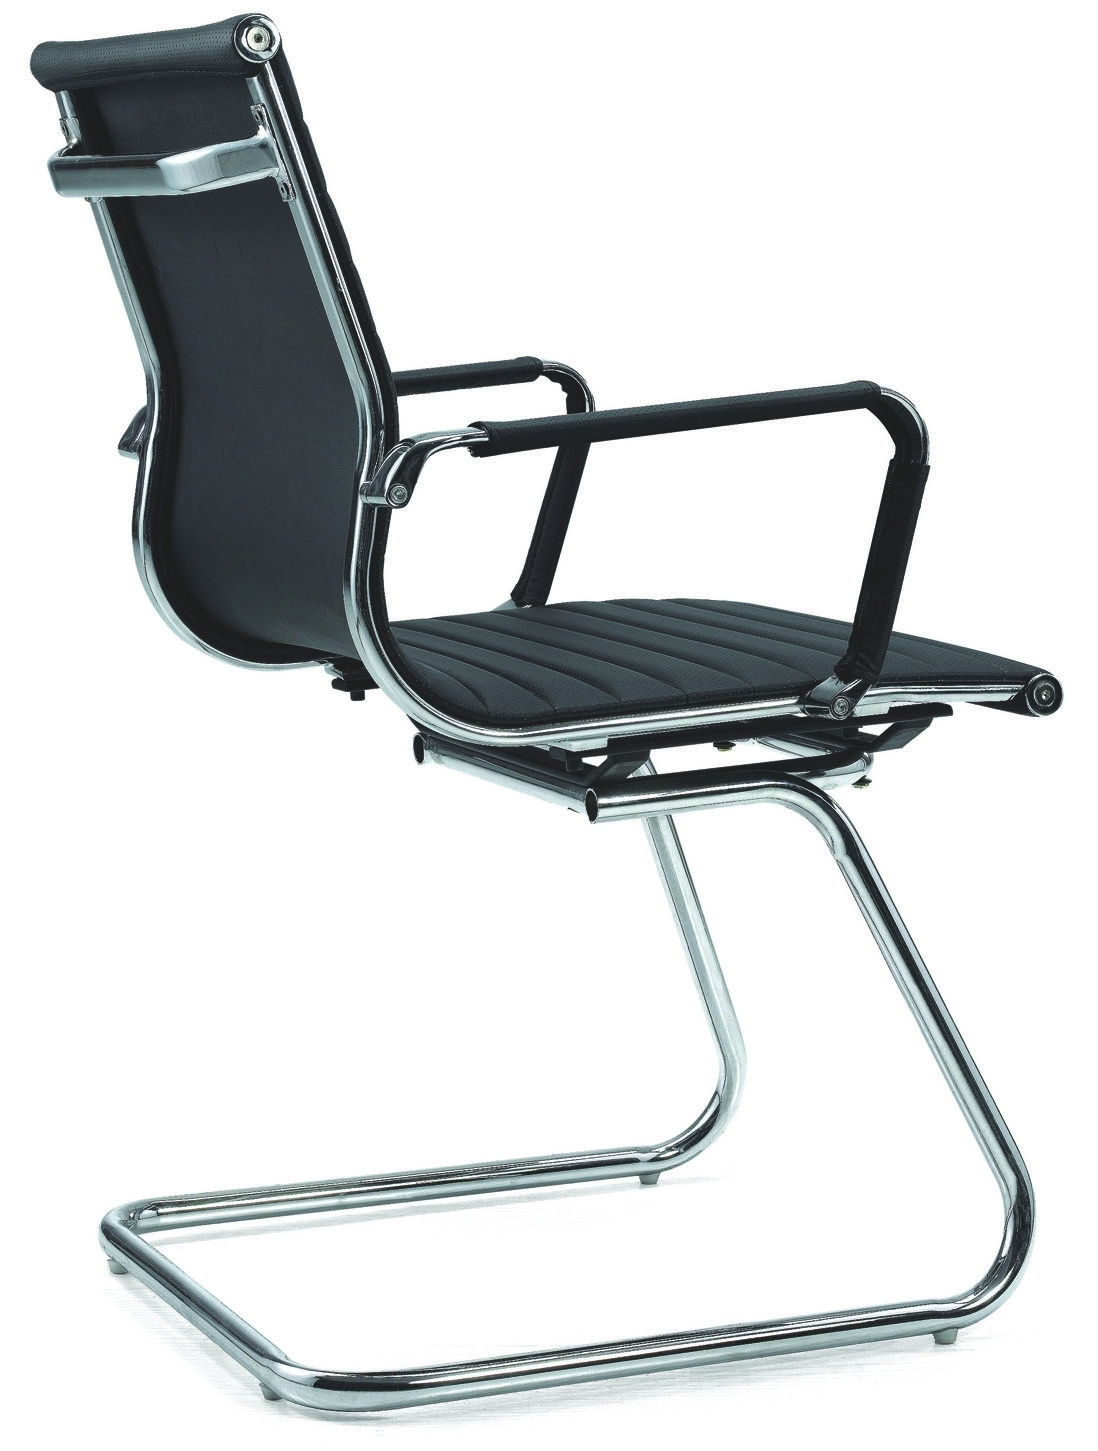 Fabrique Par Office Chair 94y9818 Lounge Chairs And Office Chairs throughout sizing 1098 X 1451